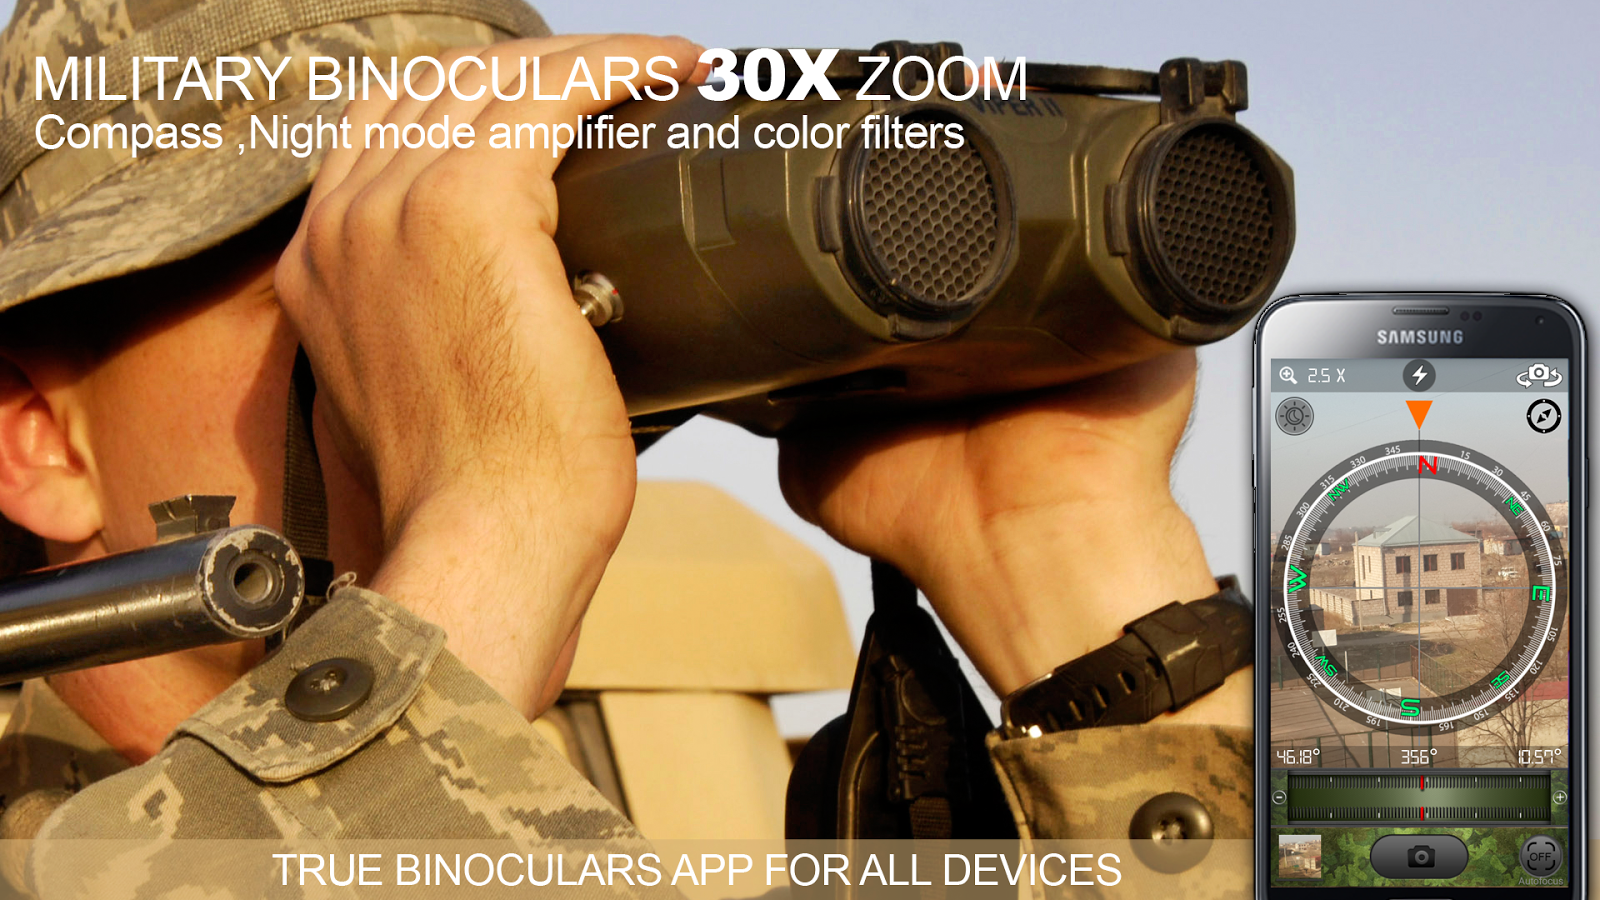 Military Binoculars 30X Zoom Screenshot 6